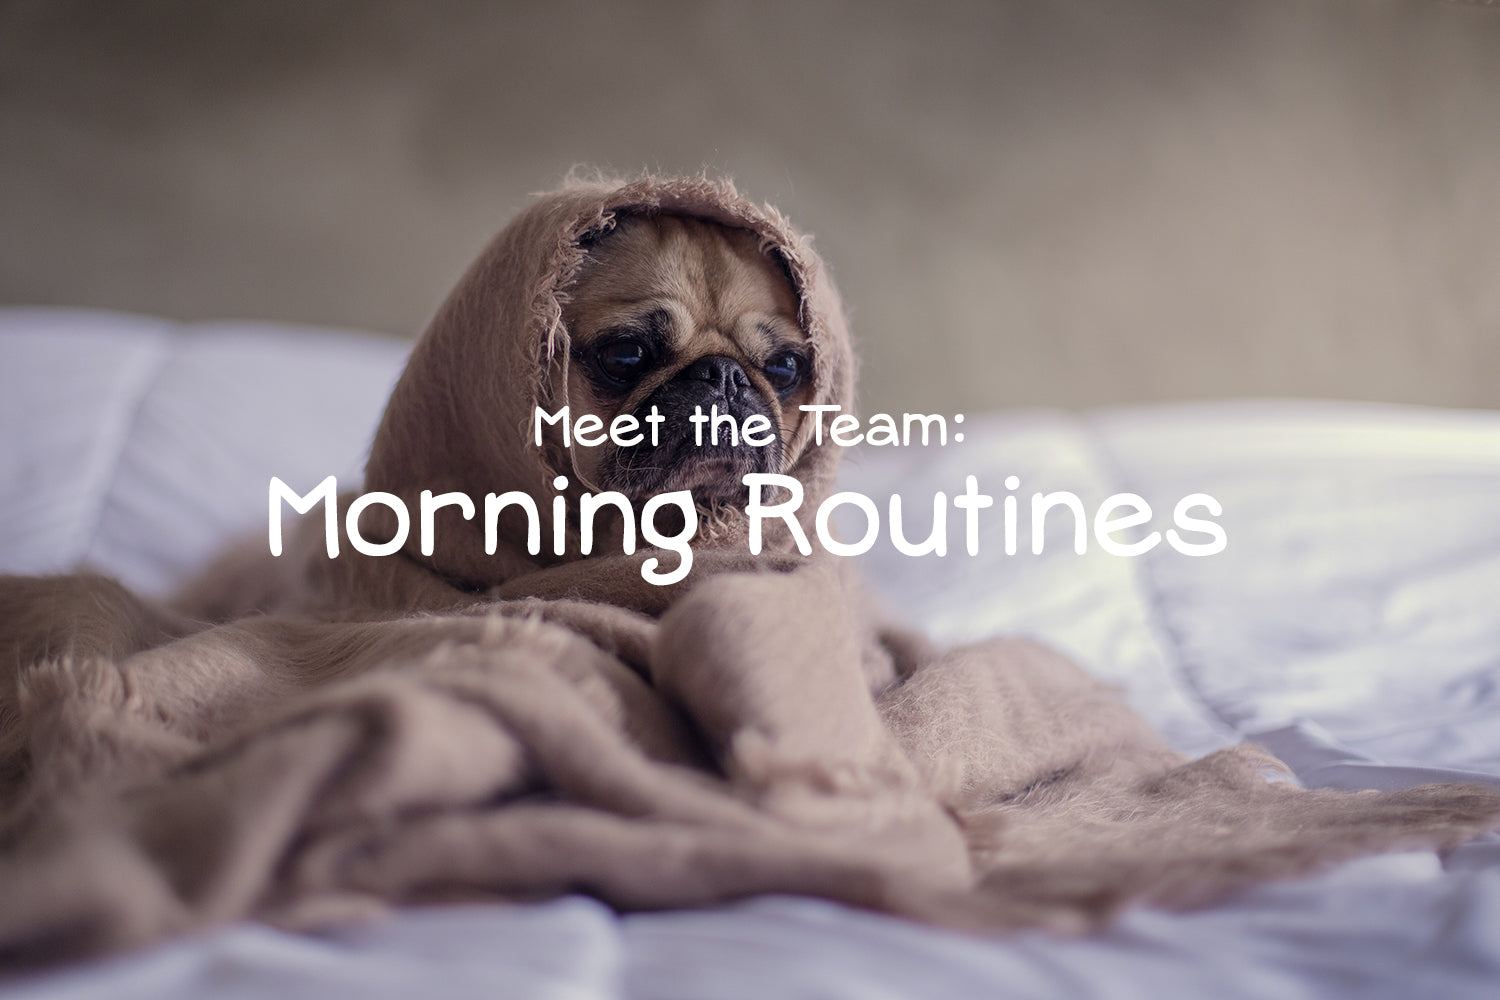 Meet the Team: Tried and True Morning Routines